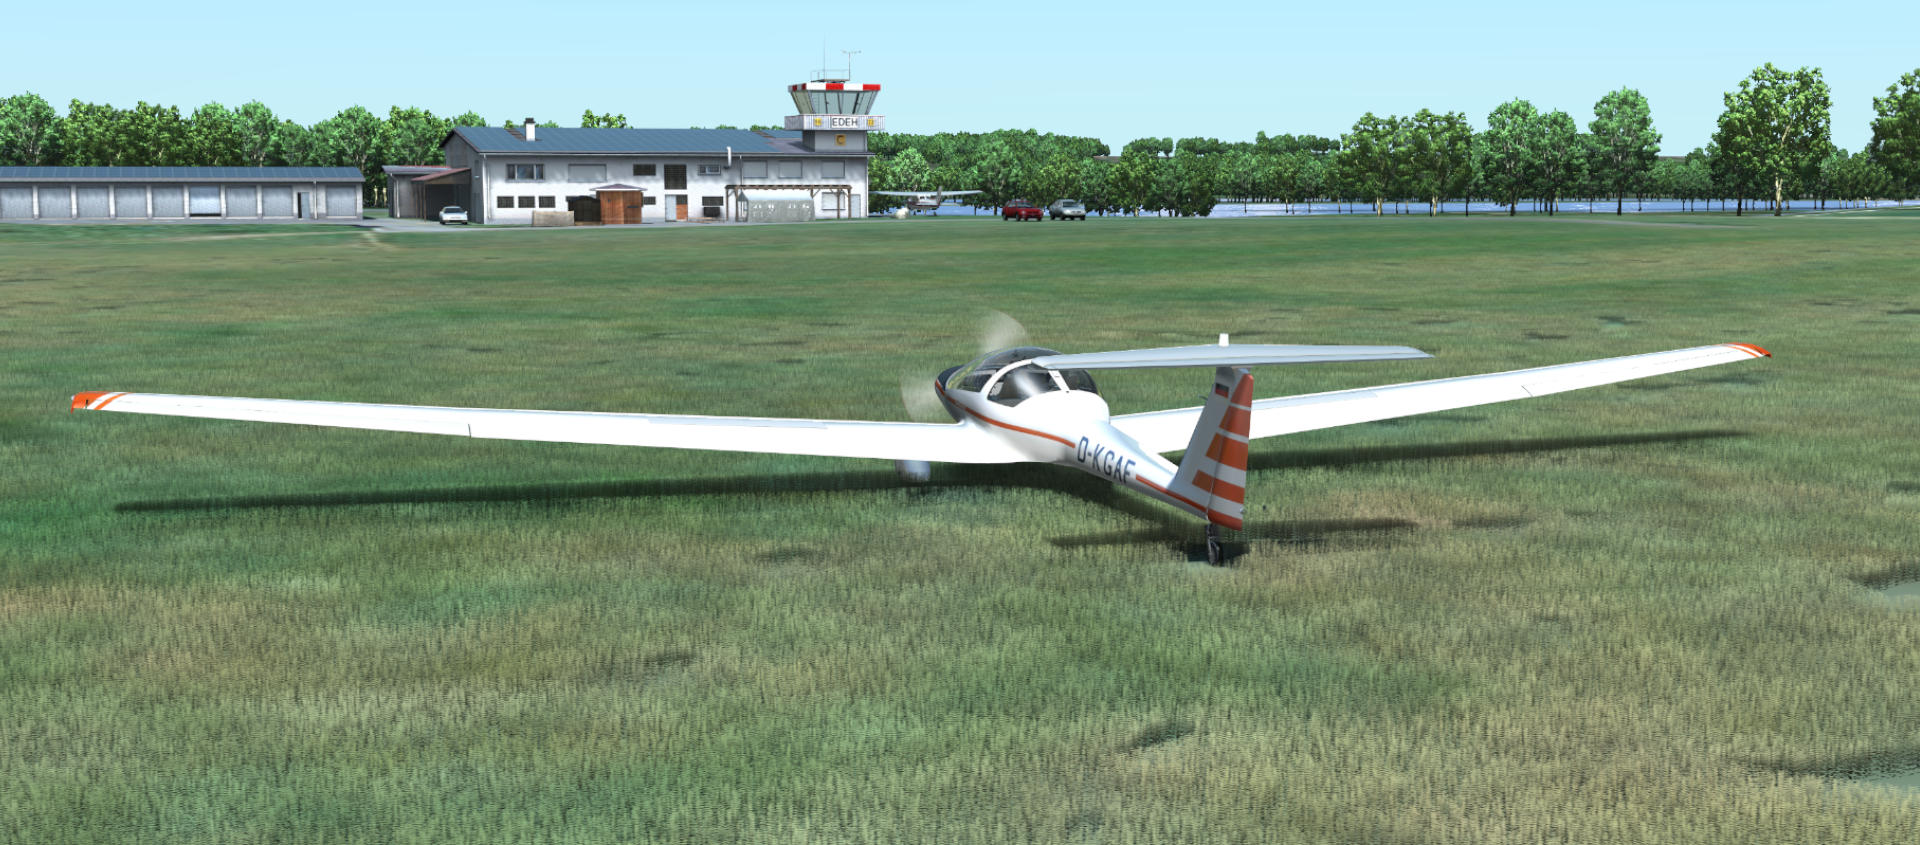 Aerosoft World of Aircraft Glider Simulator